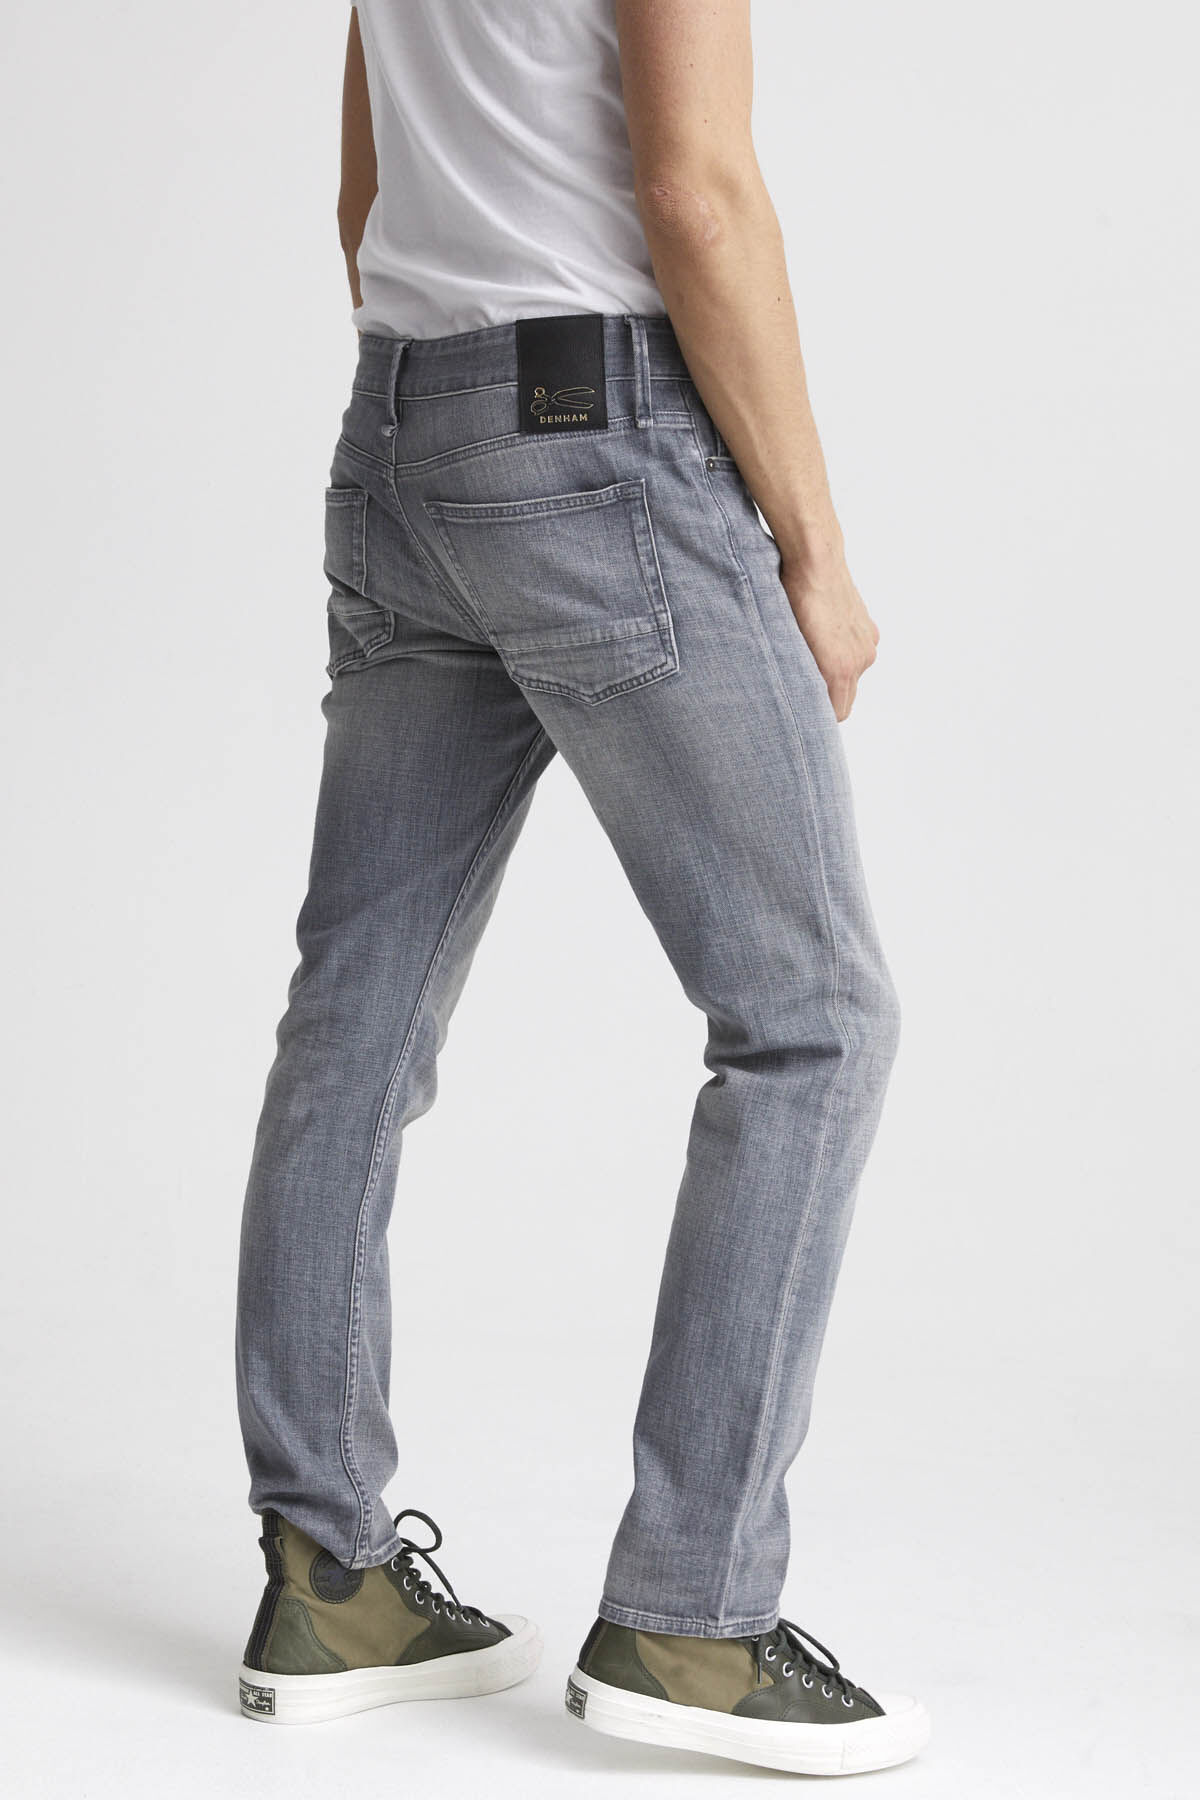 RAZOR Lefthand Lightweight Denim - Slim Fit